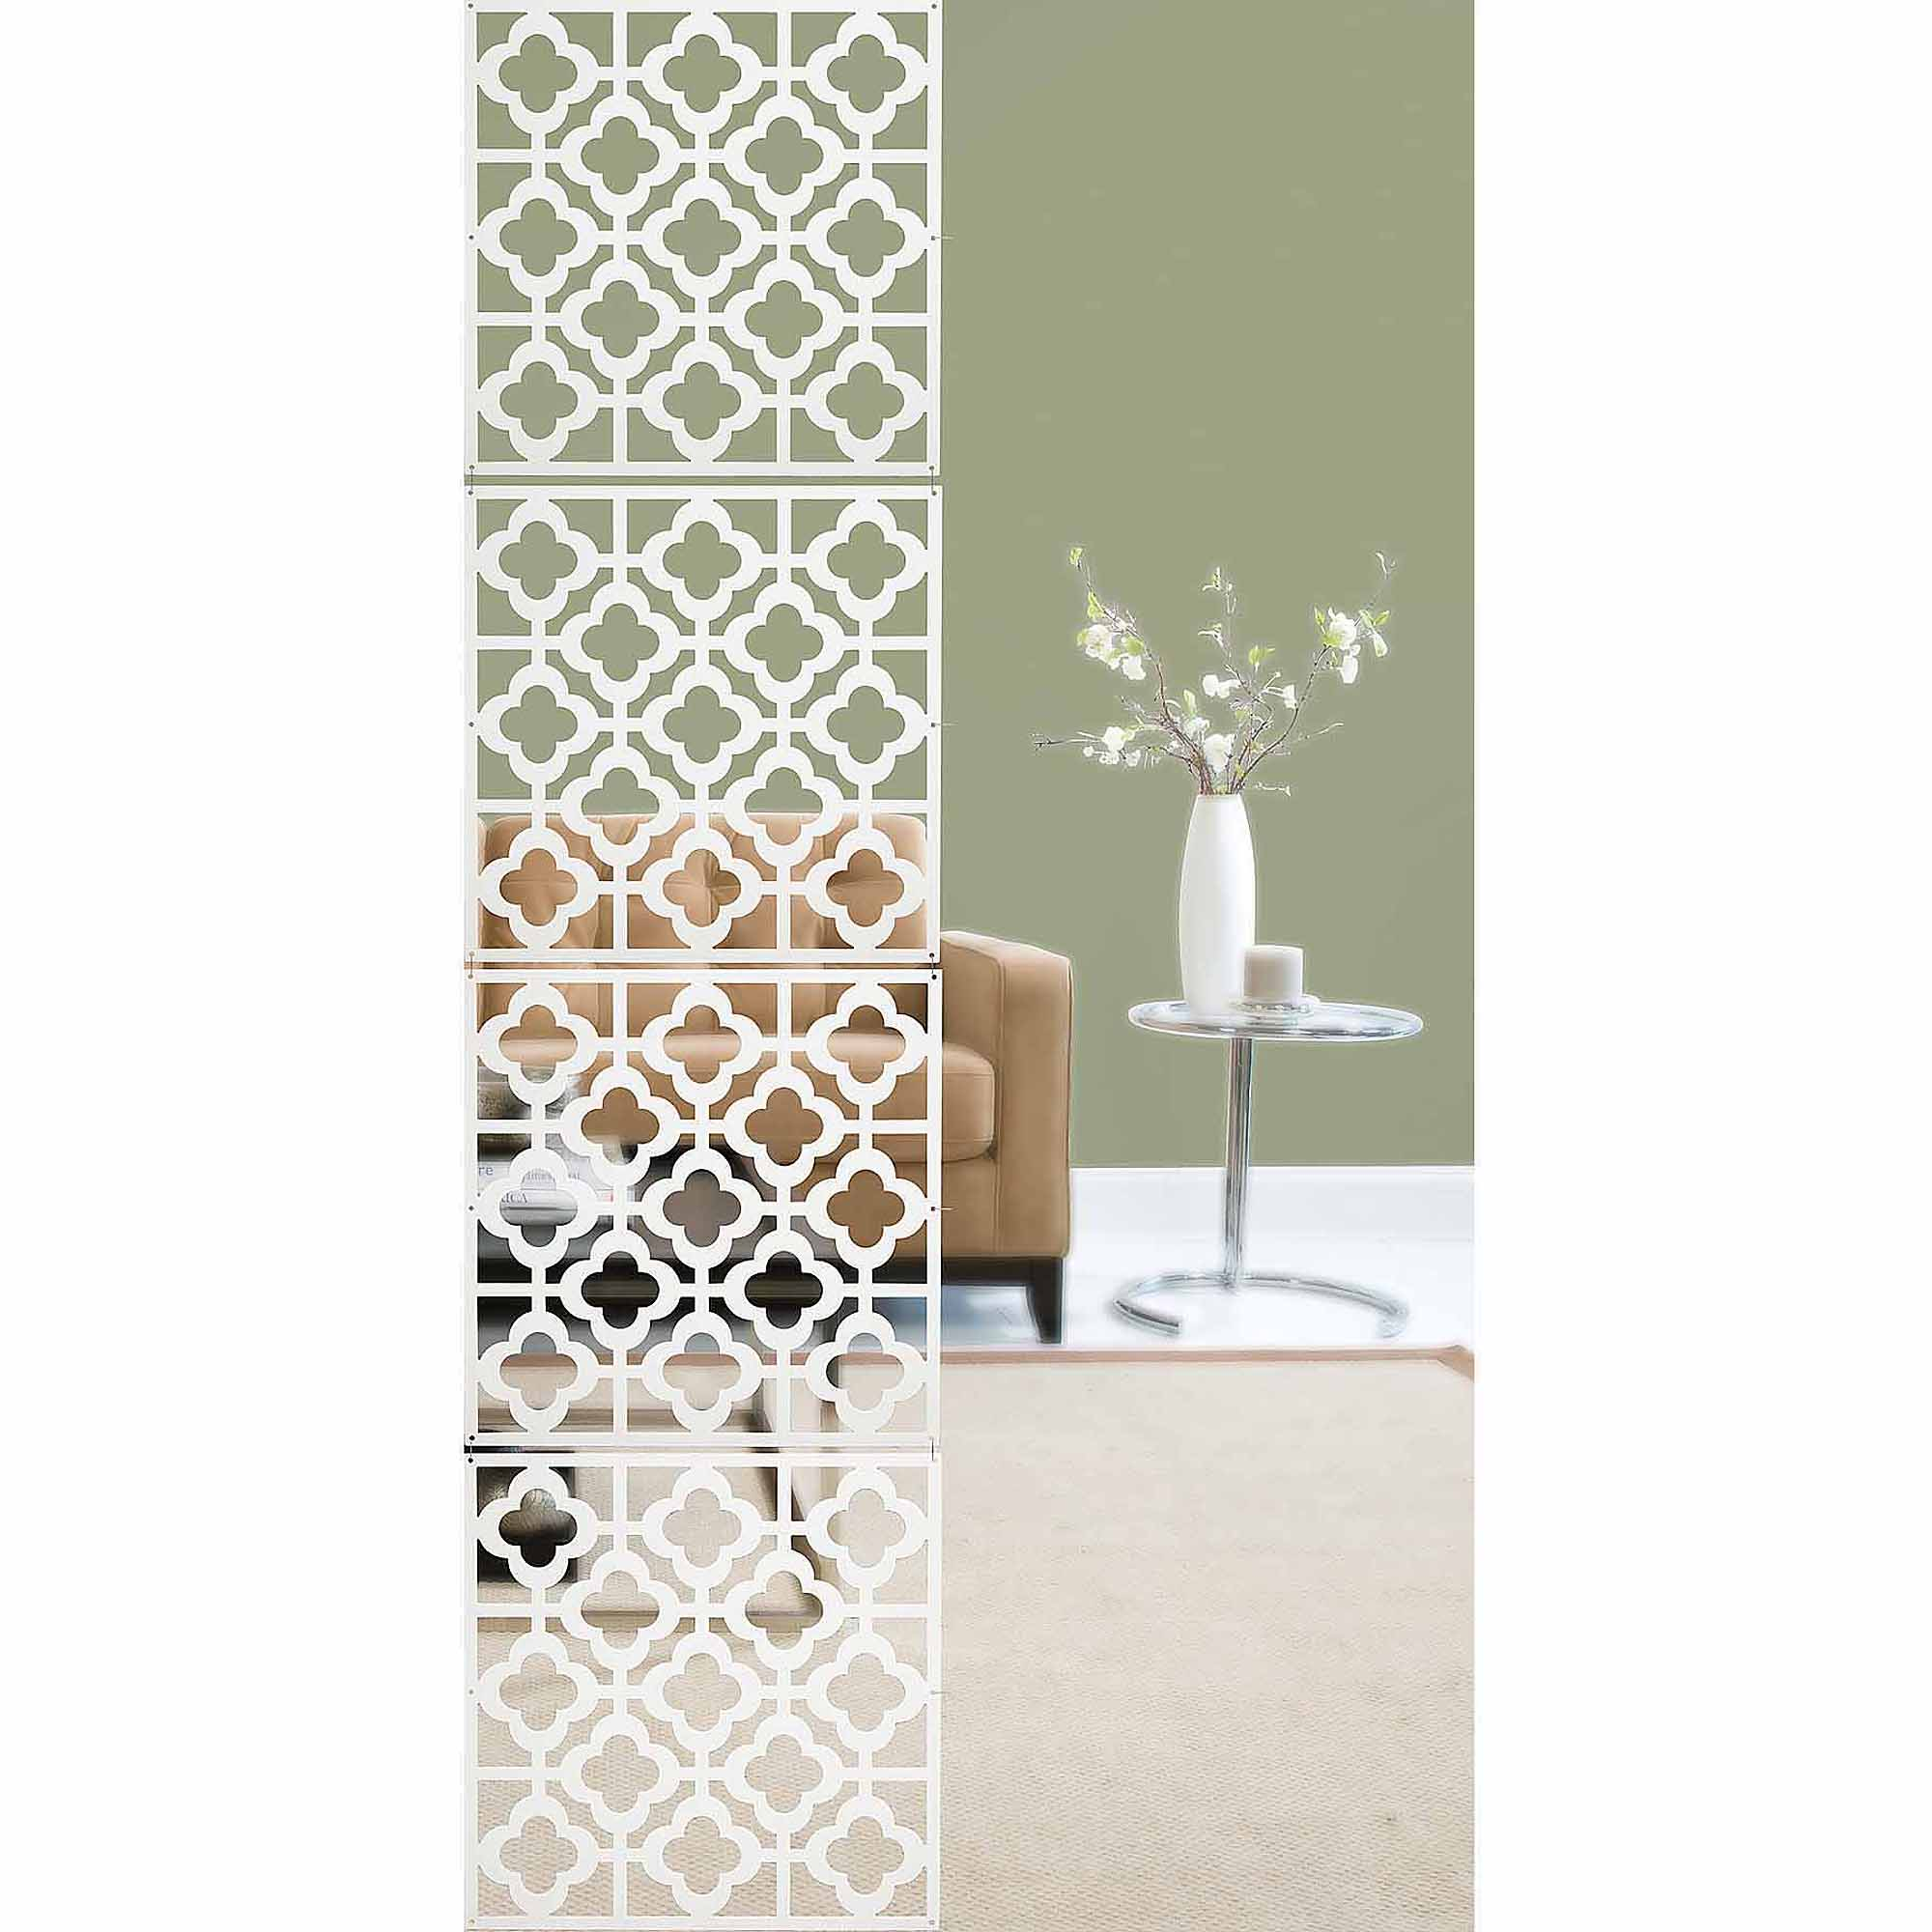 WallPops Honeycomb Decorative Screen Panels